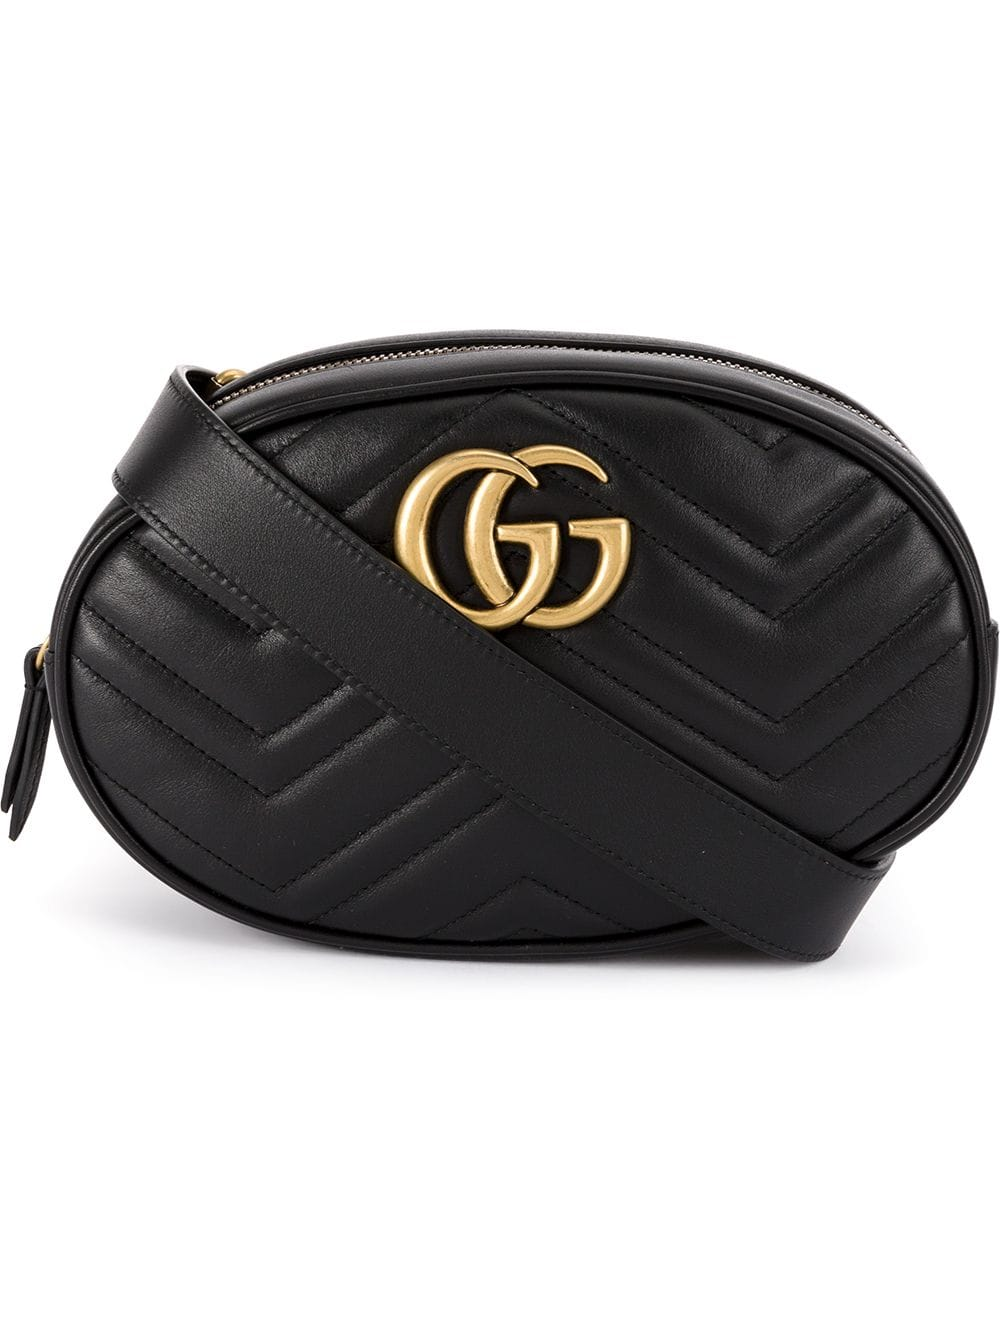 Gg Marmont Small Leather Beltbag